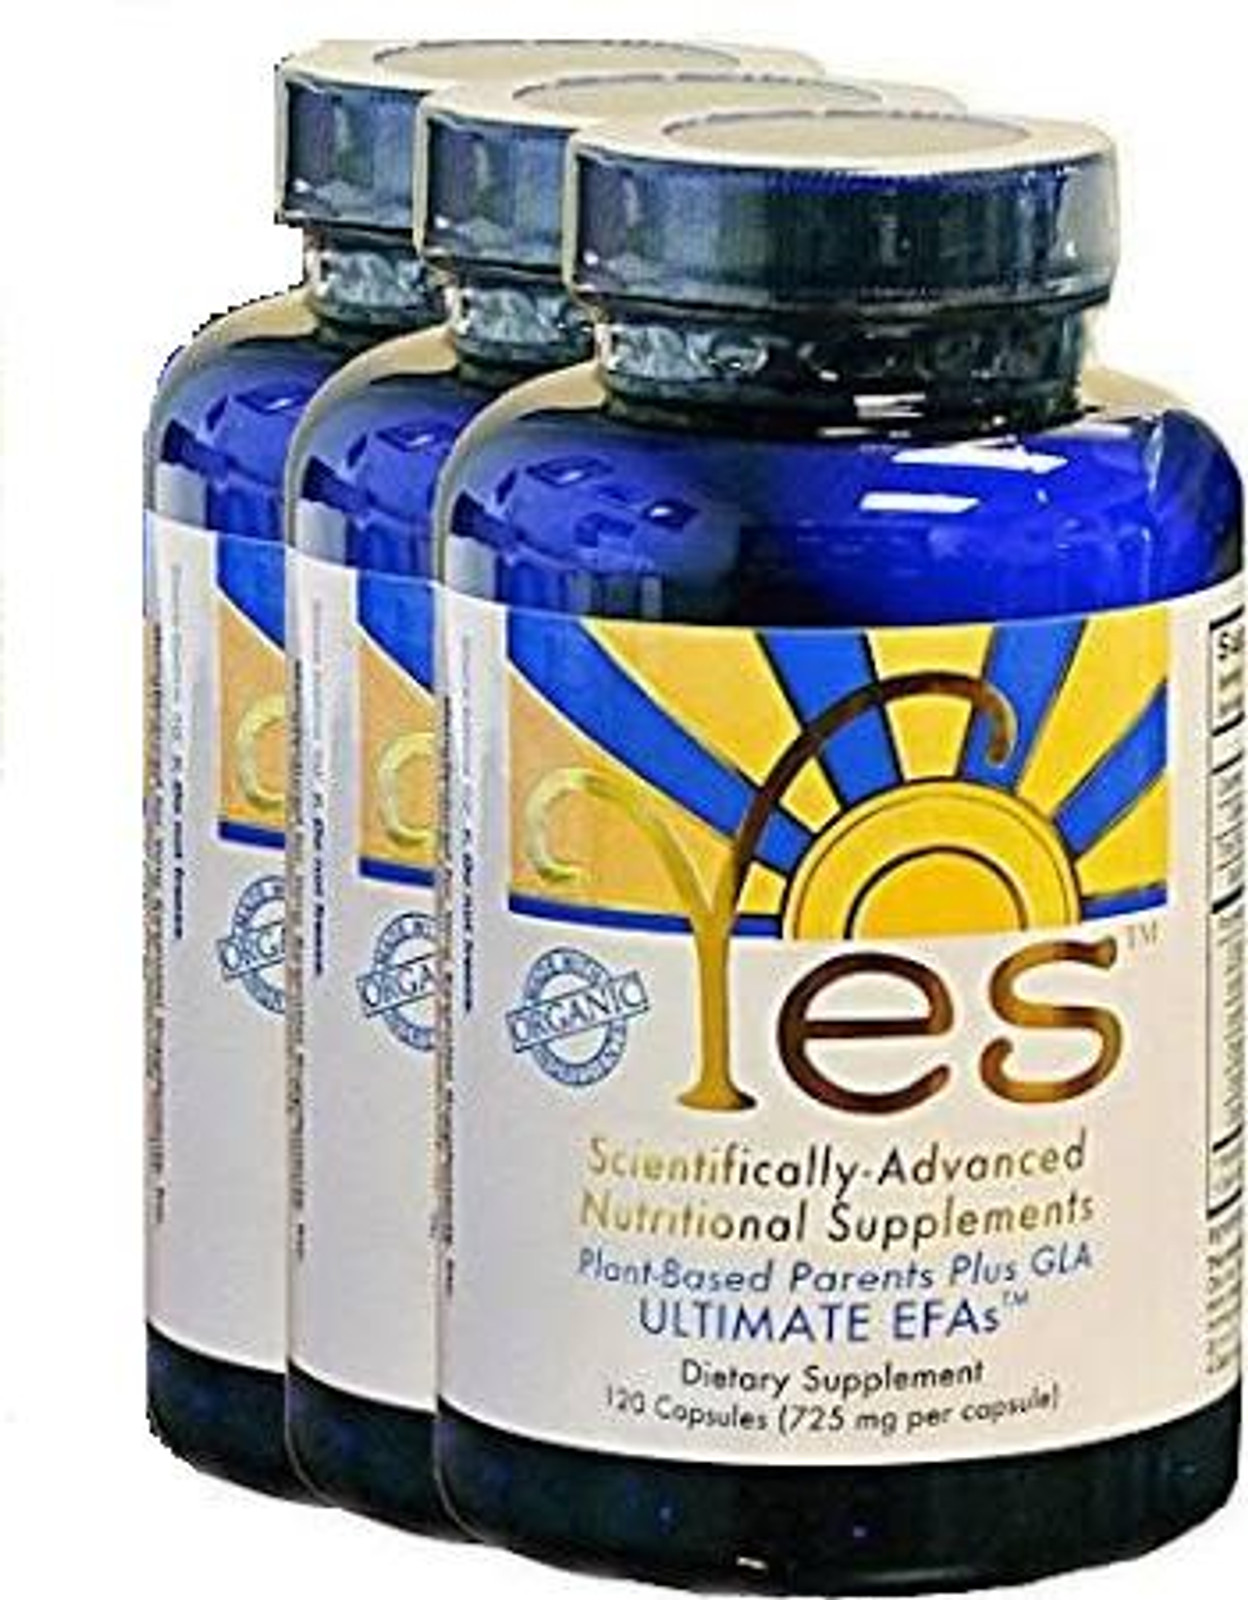 Save when you buy 3 YES EFA Supplements. Organic. Vegan. Replace fish oil for natural EFA from Flax seed oil. Original Brian Peskin formula.